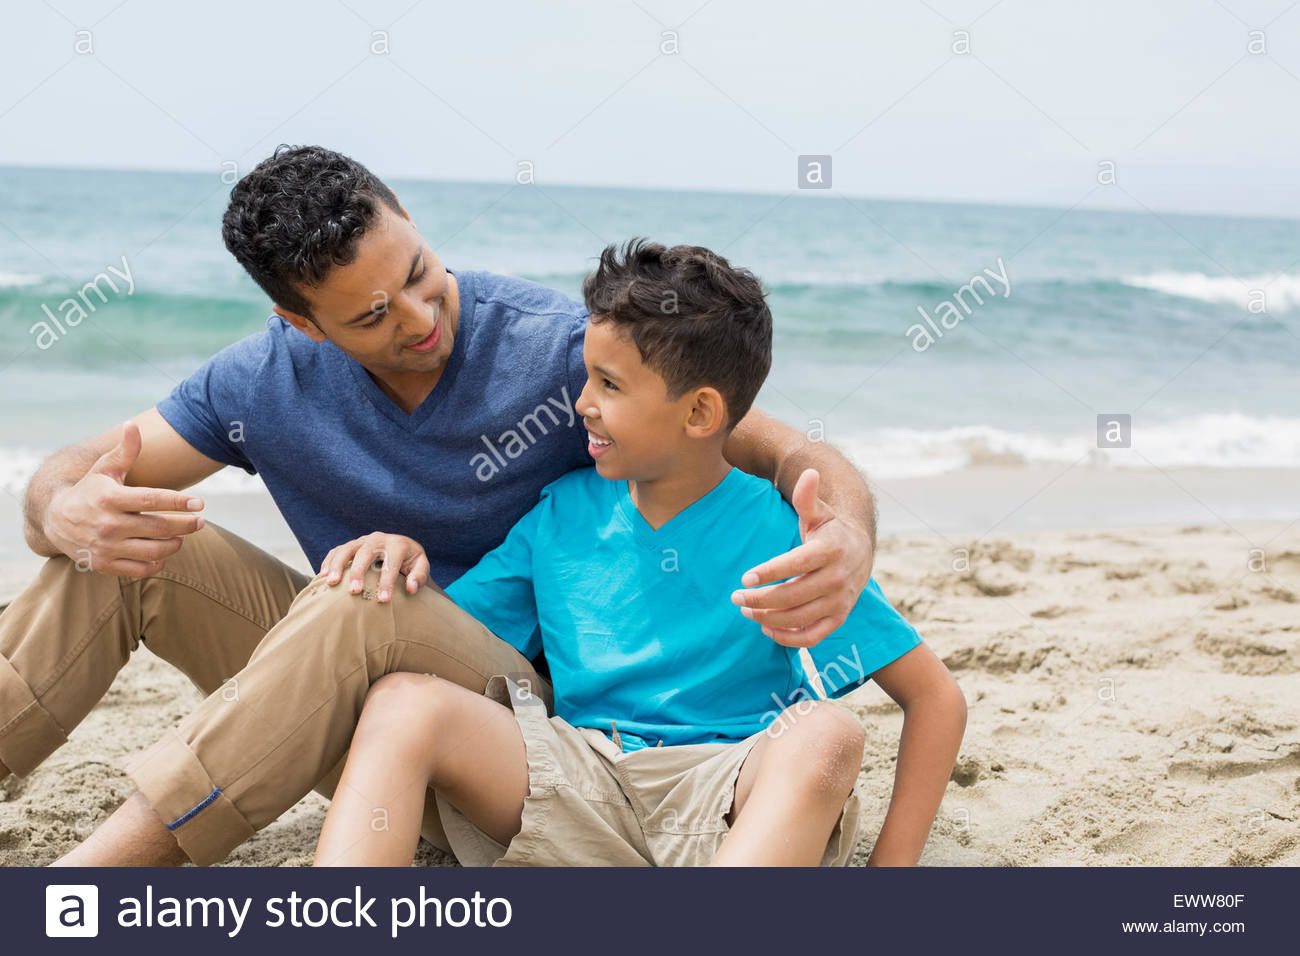 Father and son hugging on beach - Stock Image